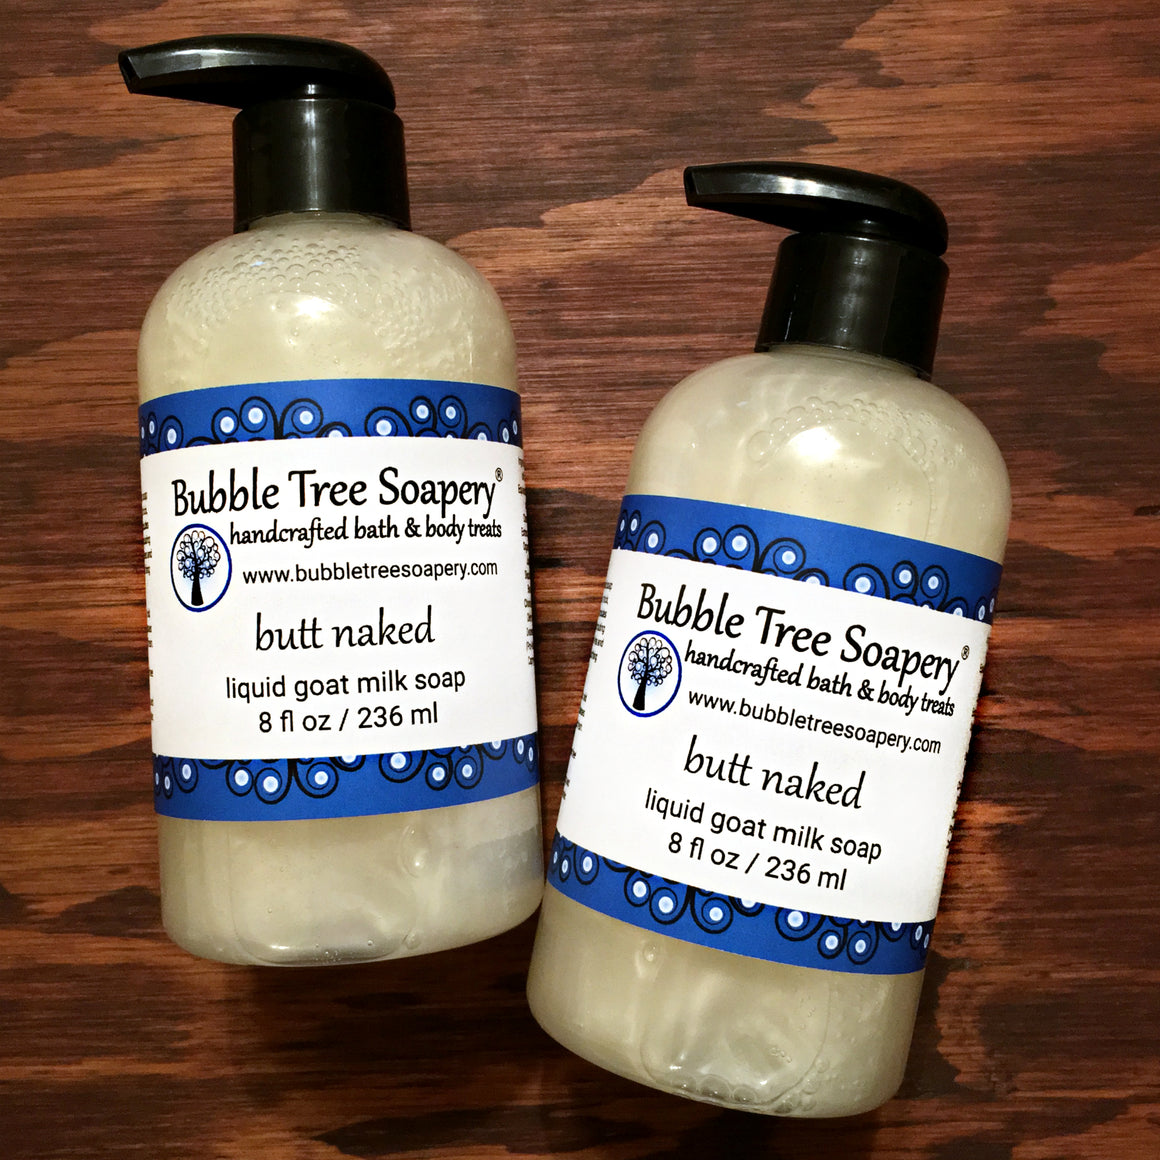 Butt Naked Liquid Goat Milk Soap | Bubble Tree Soapery